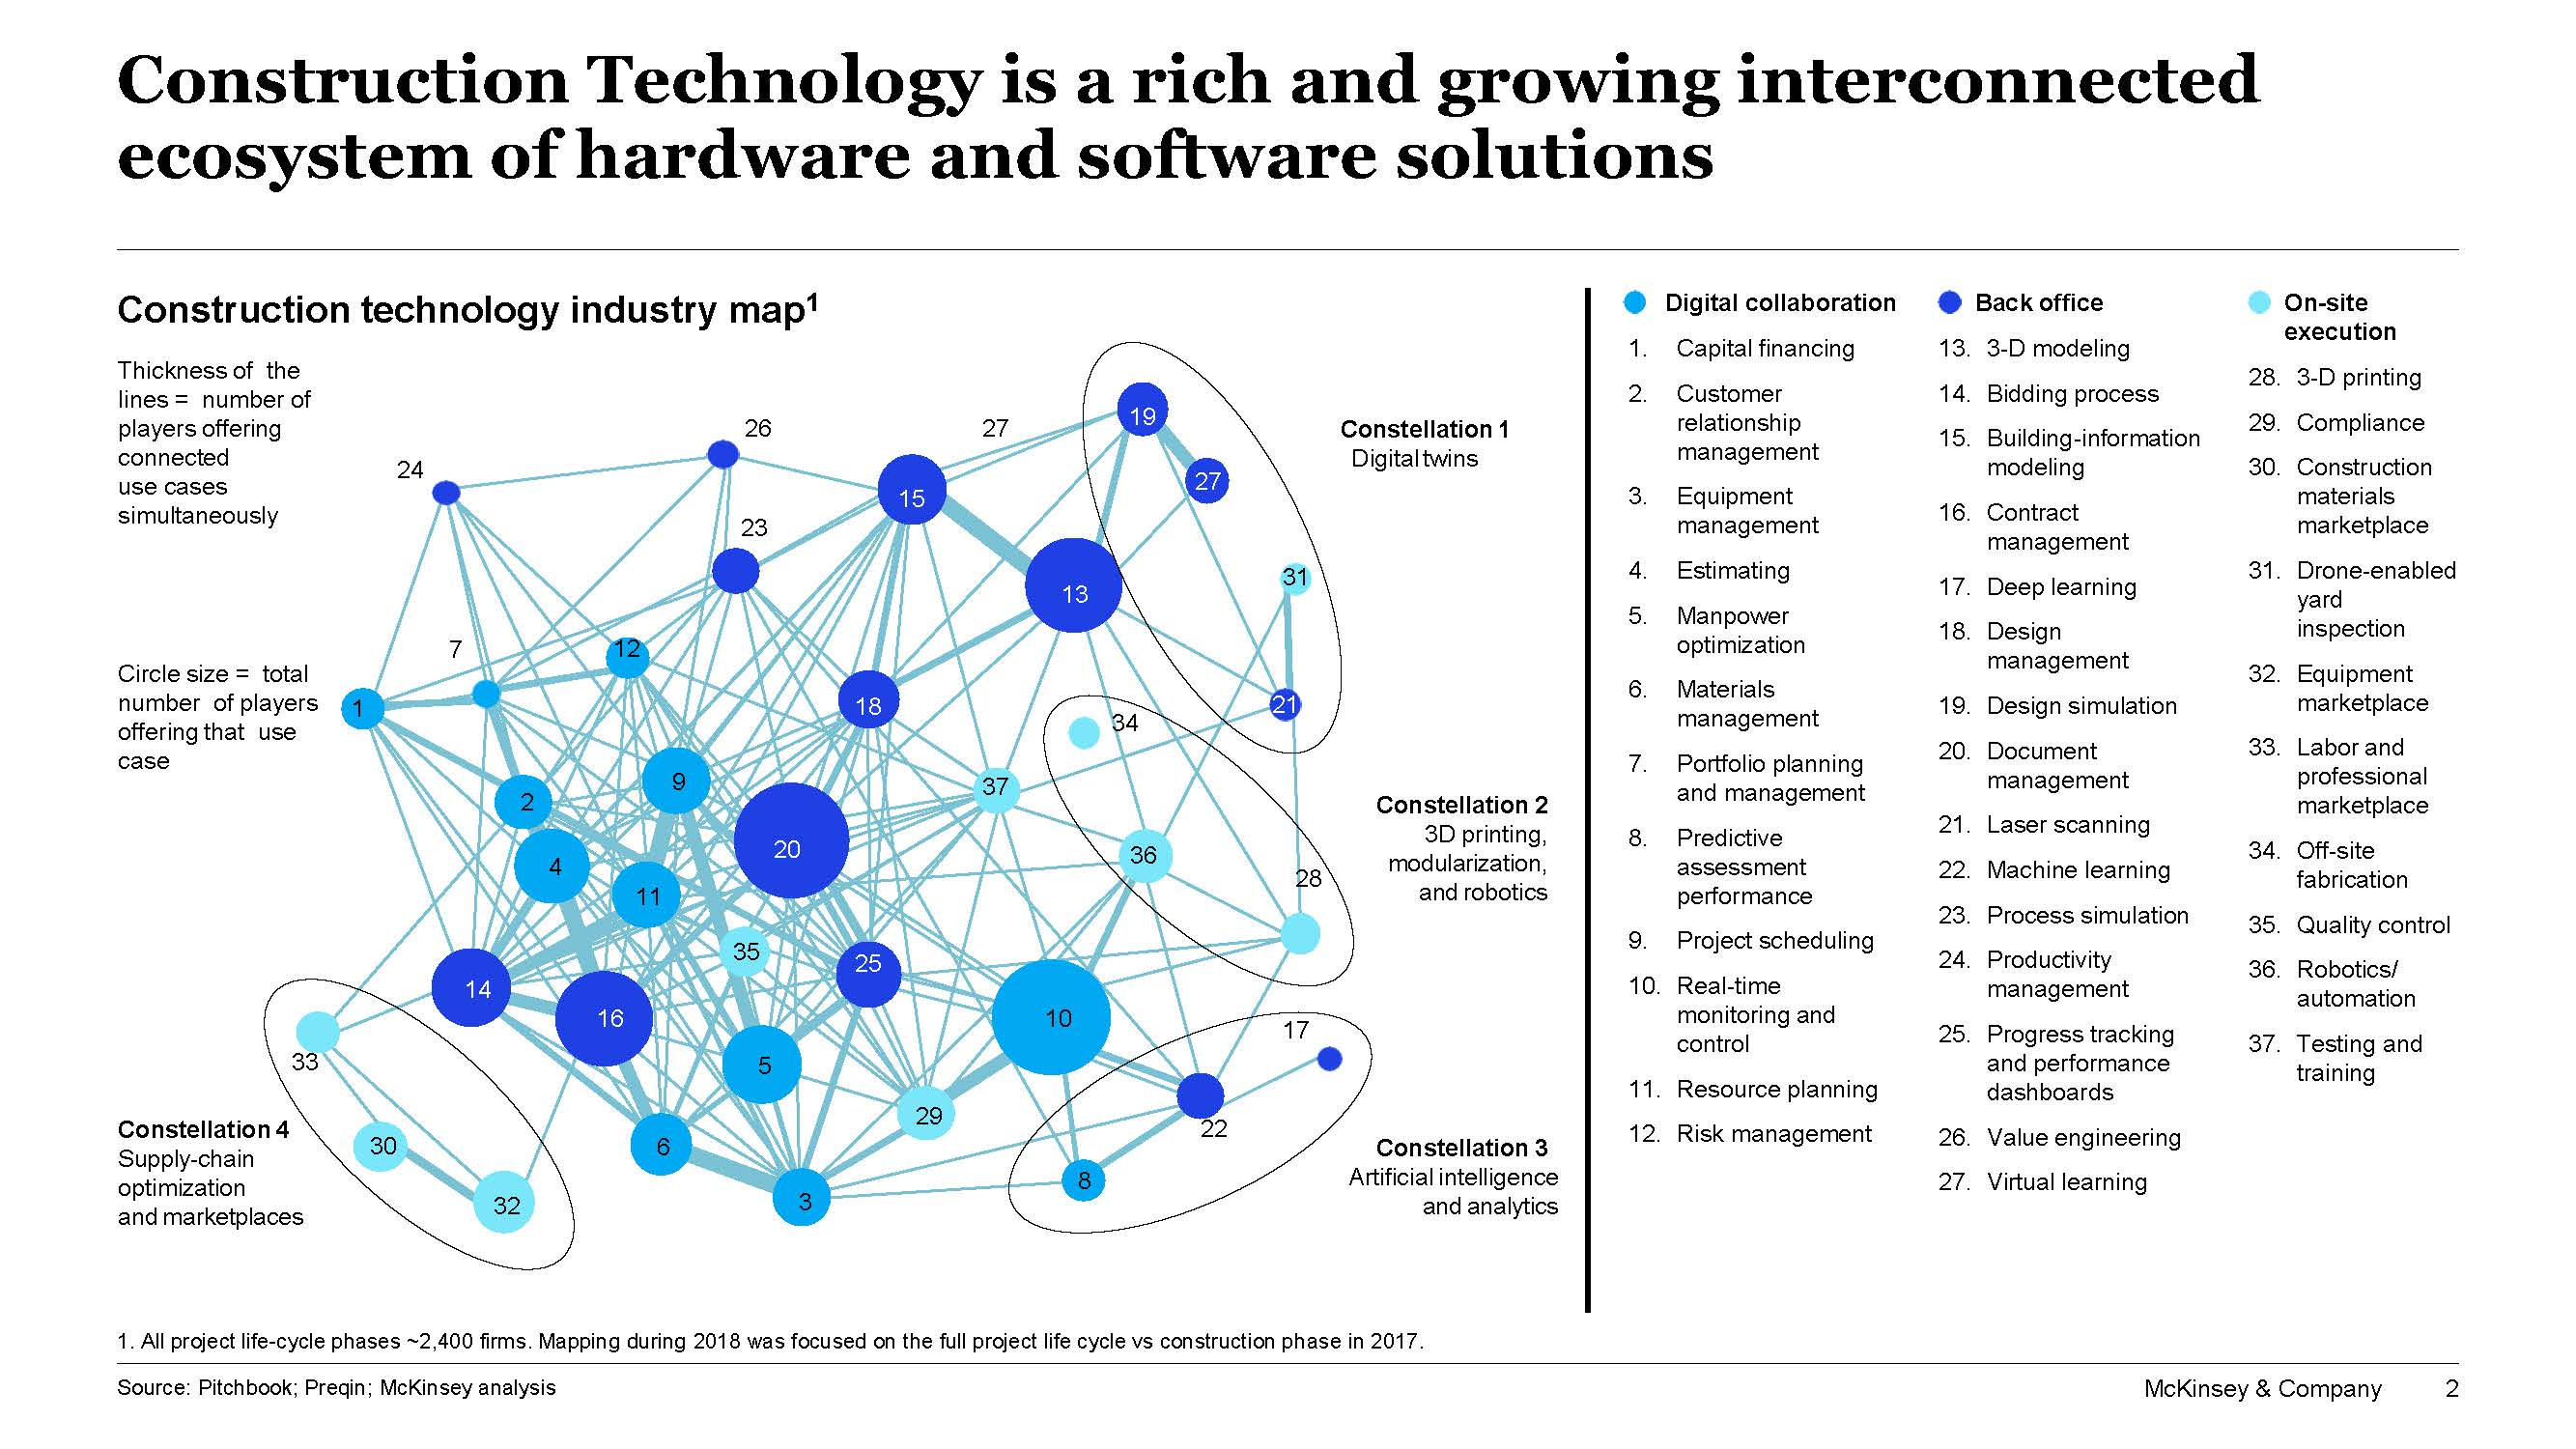 McKinsey construction technology industry map